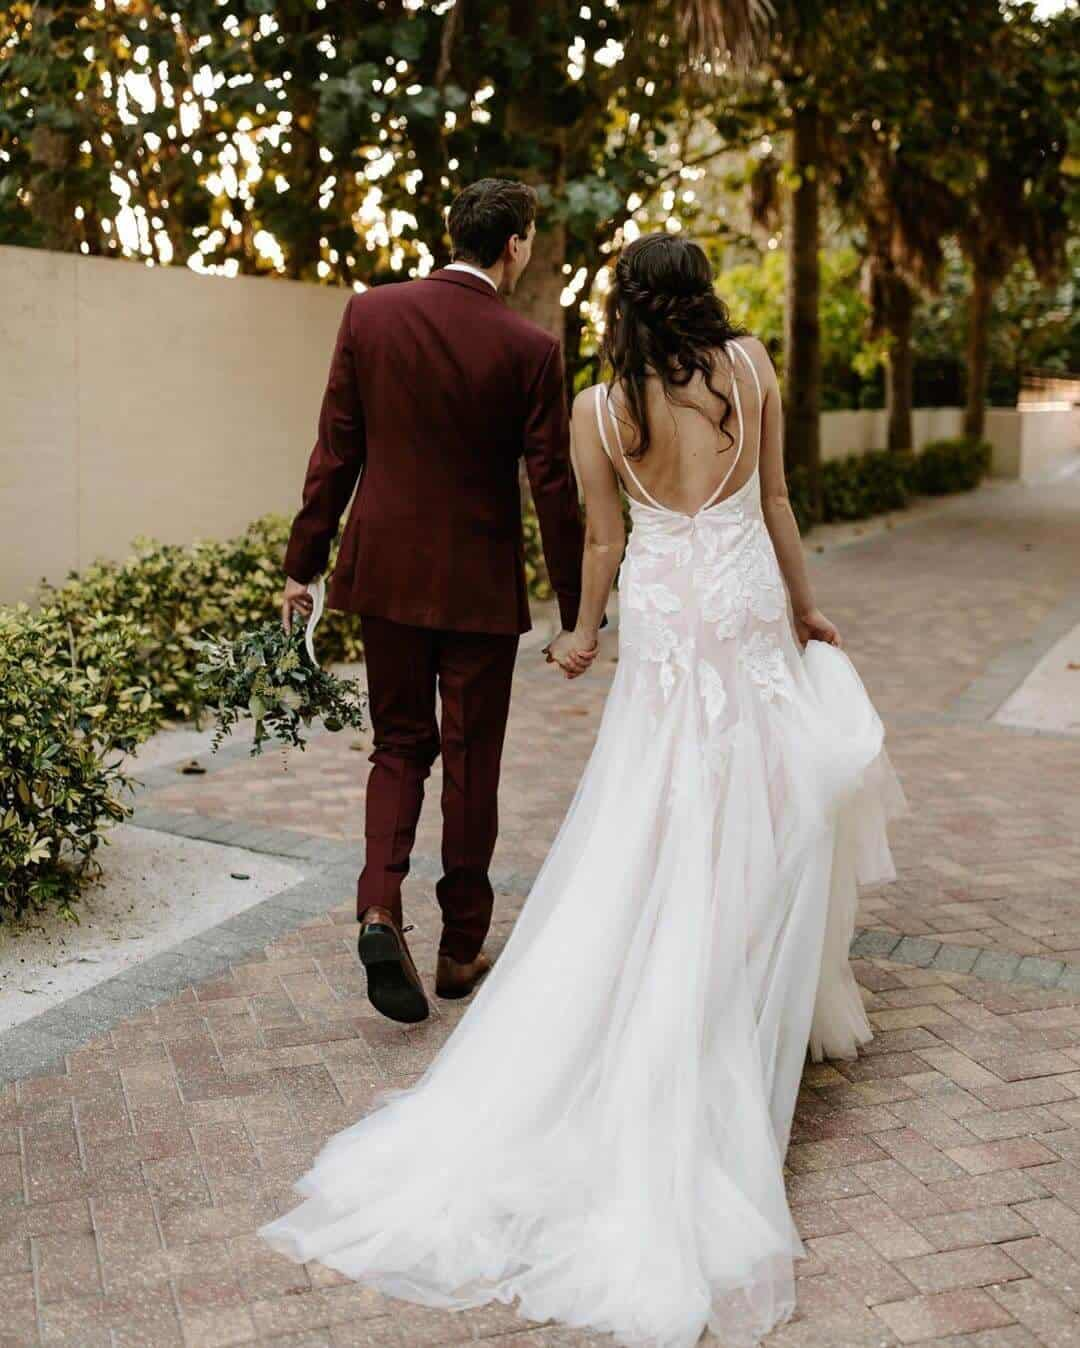 Elopement Wedding Dress Casual Simple White Backless Dress Intimate Wedding Dress Romantic Kerri Carlquist Photography (1)